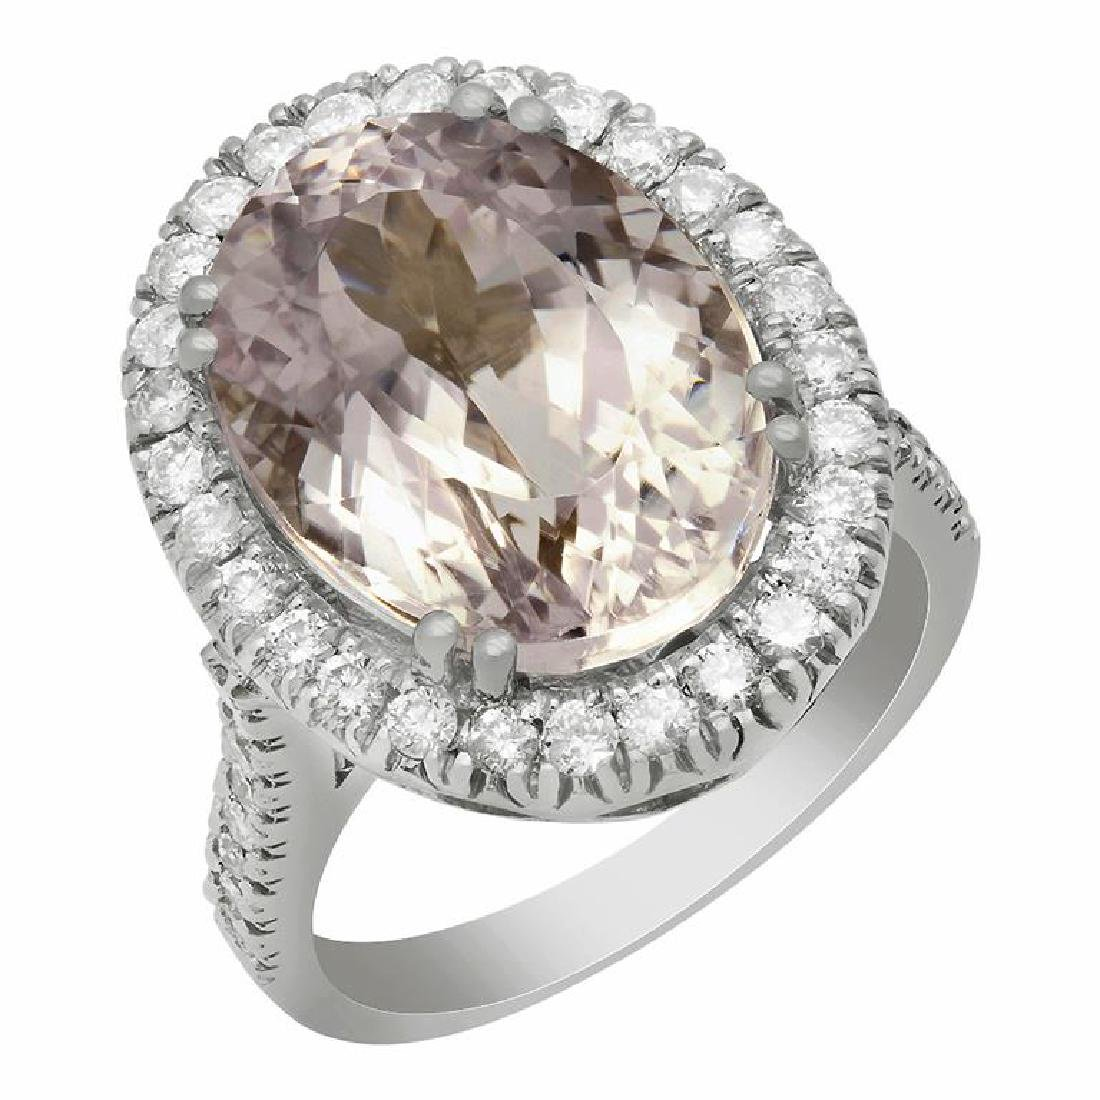 14k White Gold 11.83ct Kunzite 1.02ct Diamond Ring